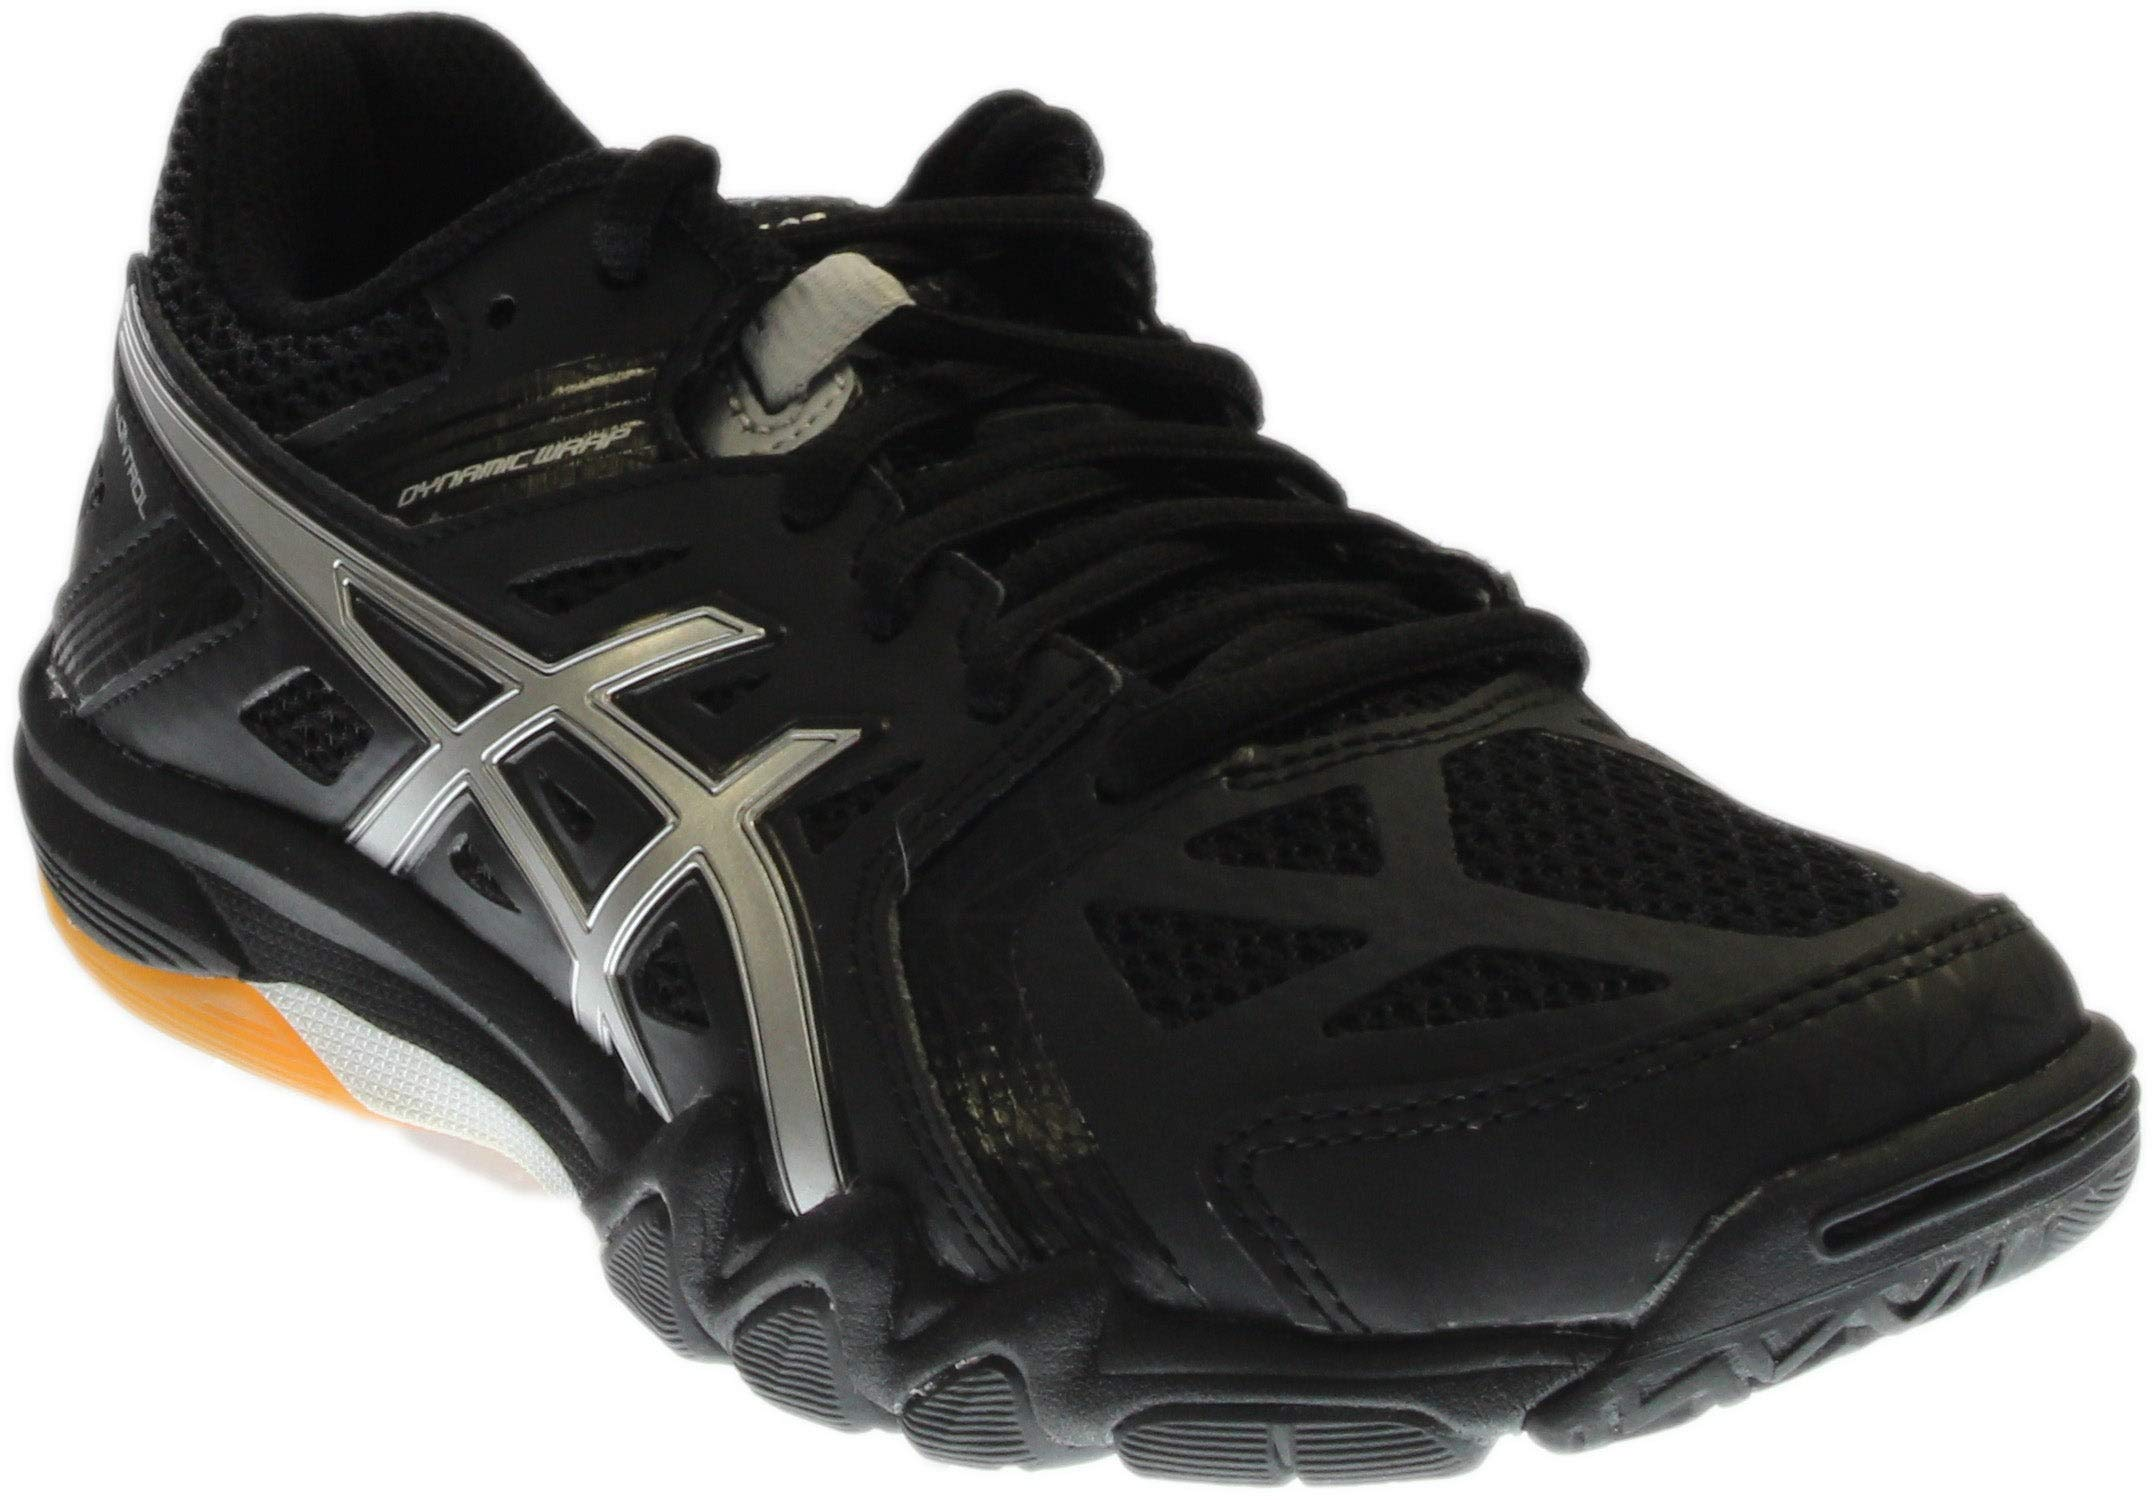 ASICS Women's Gel Court Control Volleyball Shoe, Black/Silver, 8.5 M US by ASICS